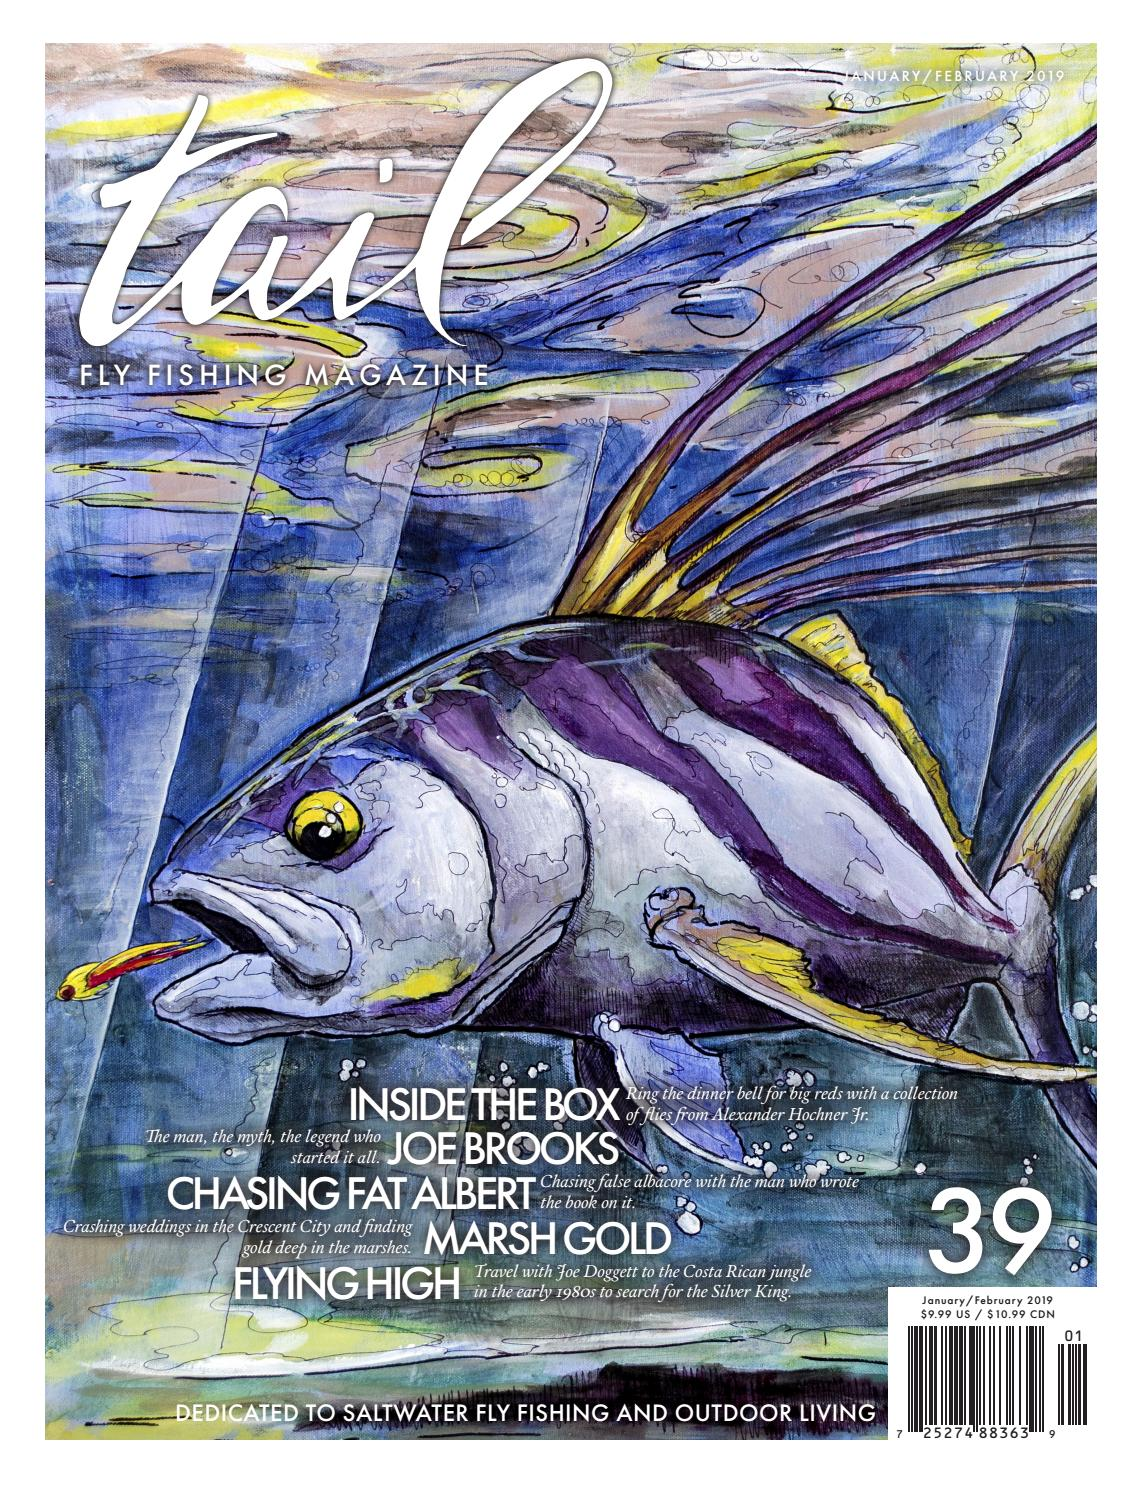 Tail Fly Fishing Magazine Issue 39 January February 2019 By Tail